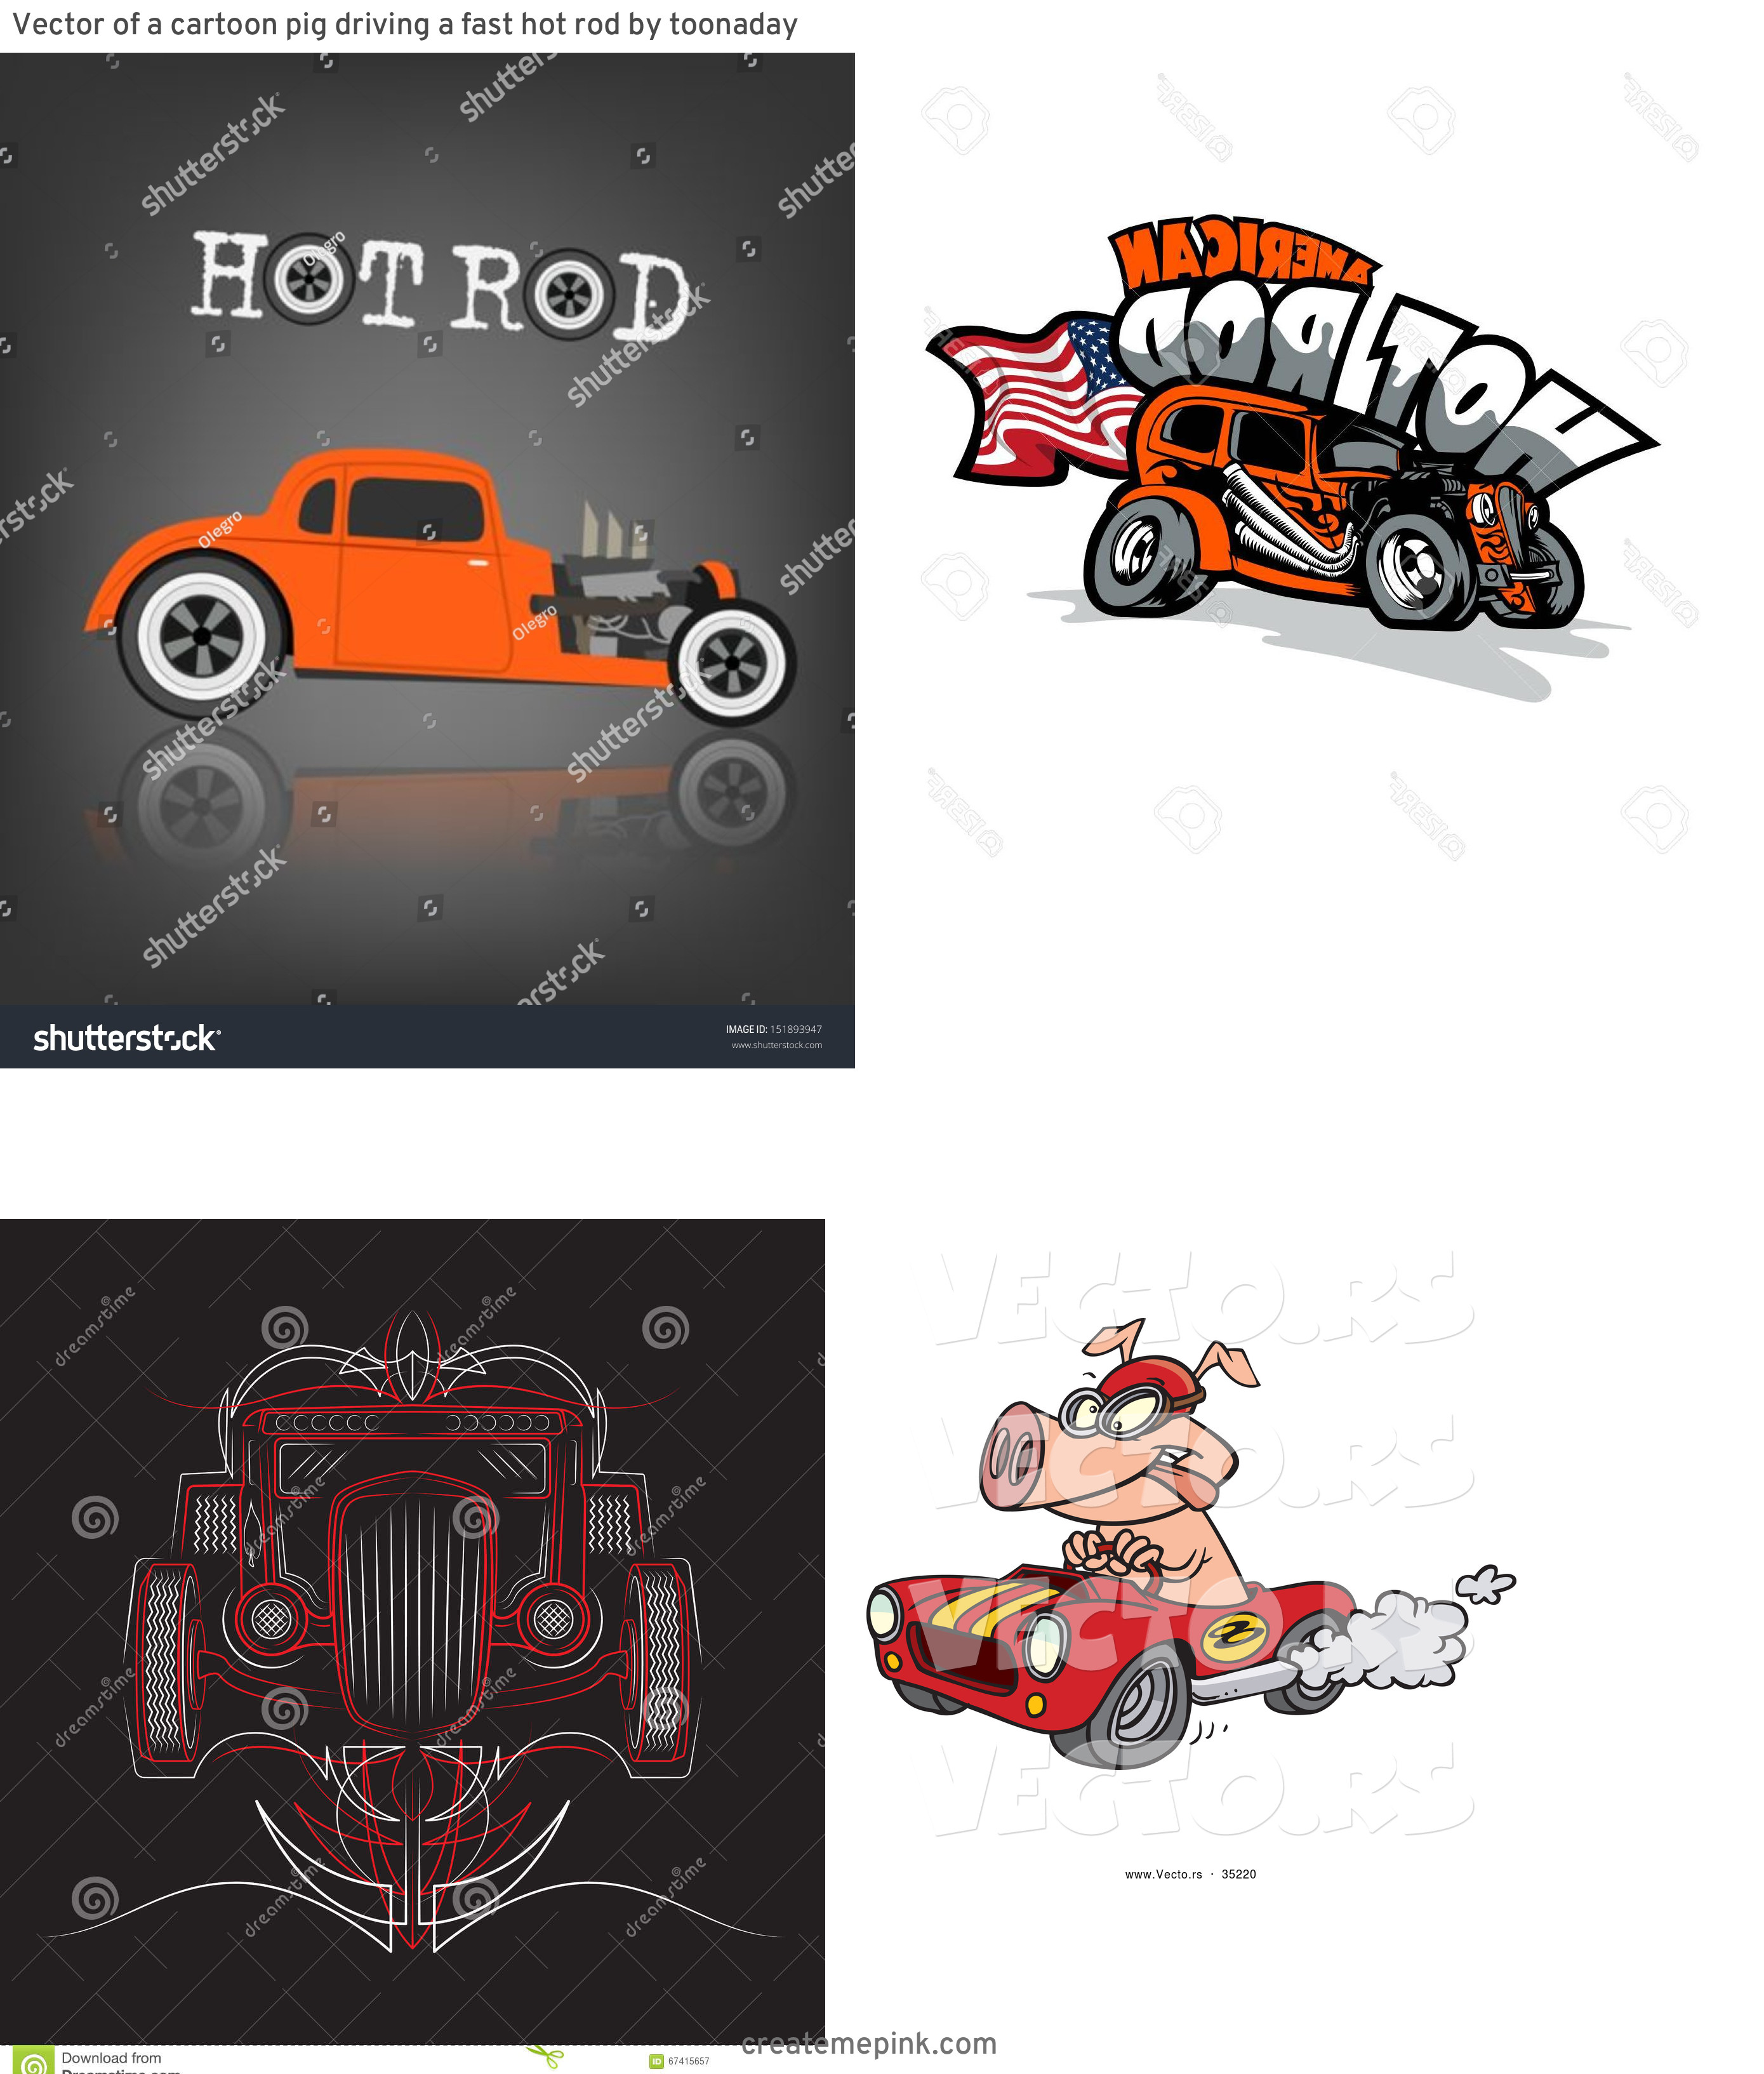 Vector Cartoon Hot Rod: Vector Of A Cartoon Pig Driving A Fast Hot Rod By Toonaday